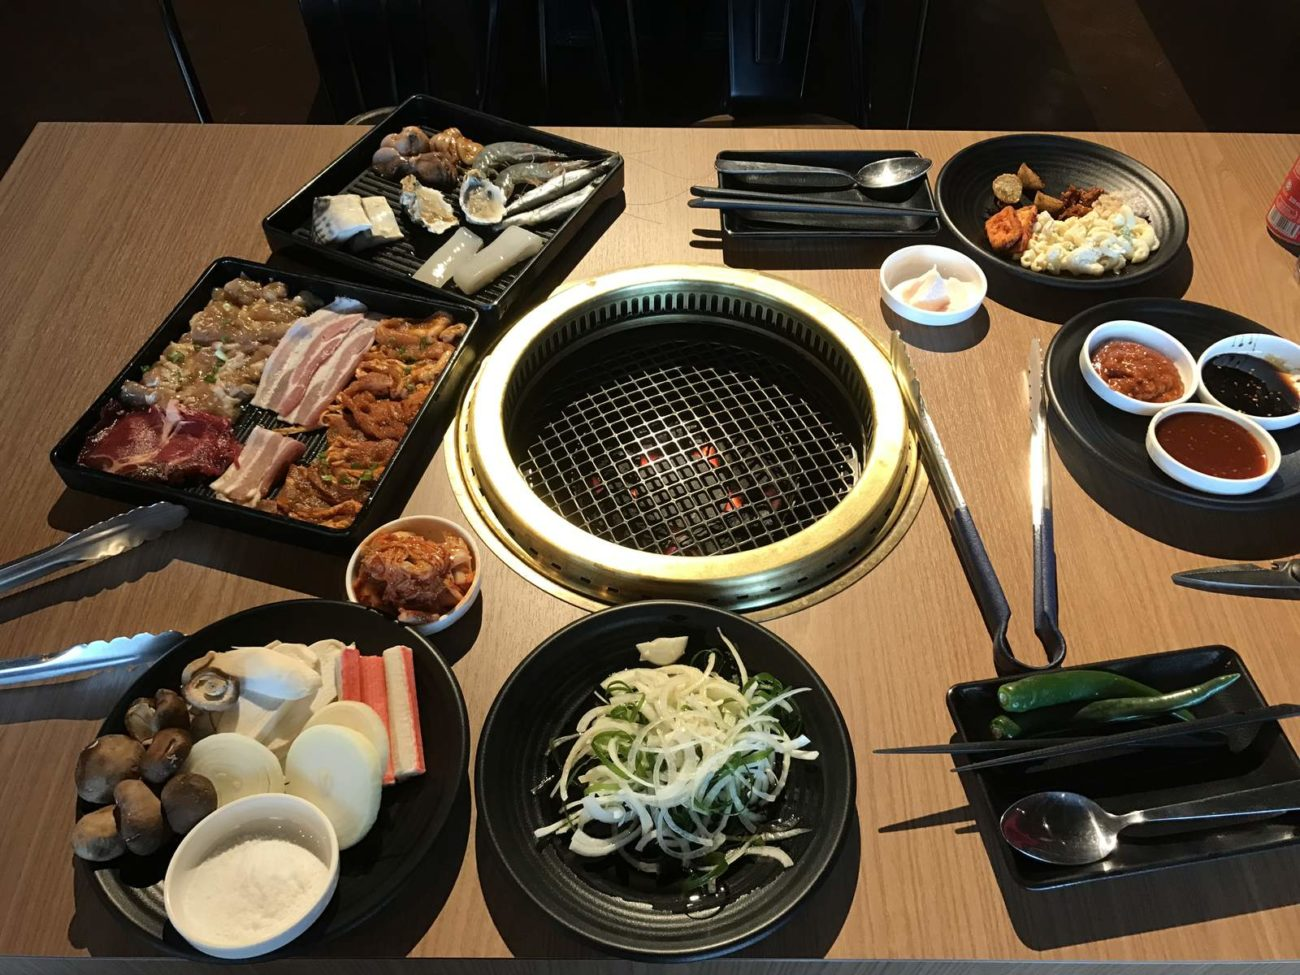 Modern Self Grilling Bbq Restaurant Kg Korean Charcoal